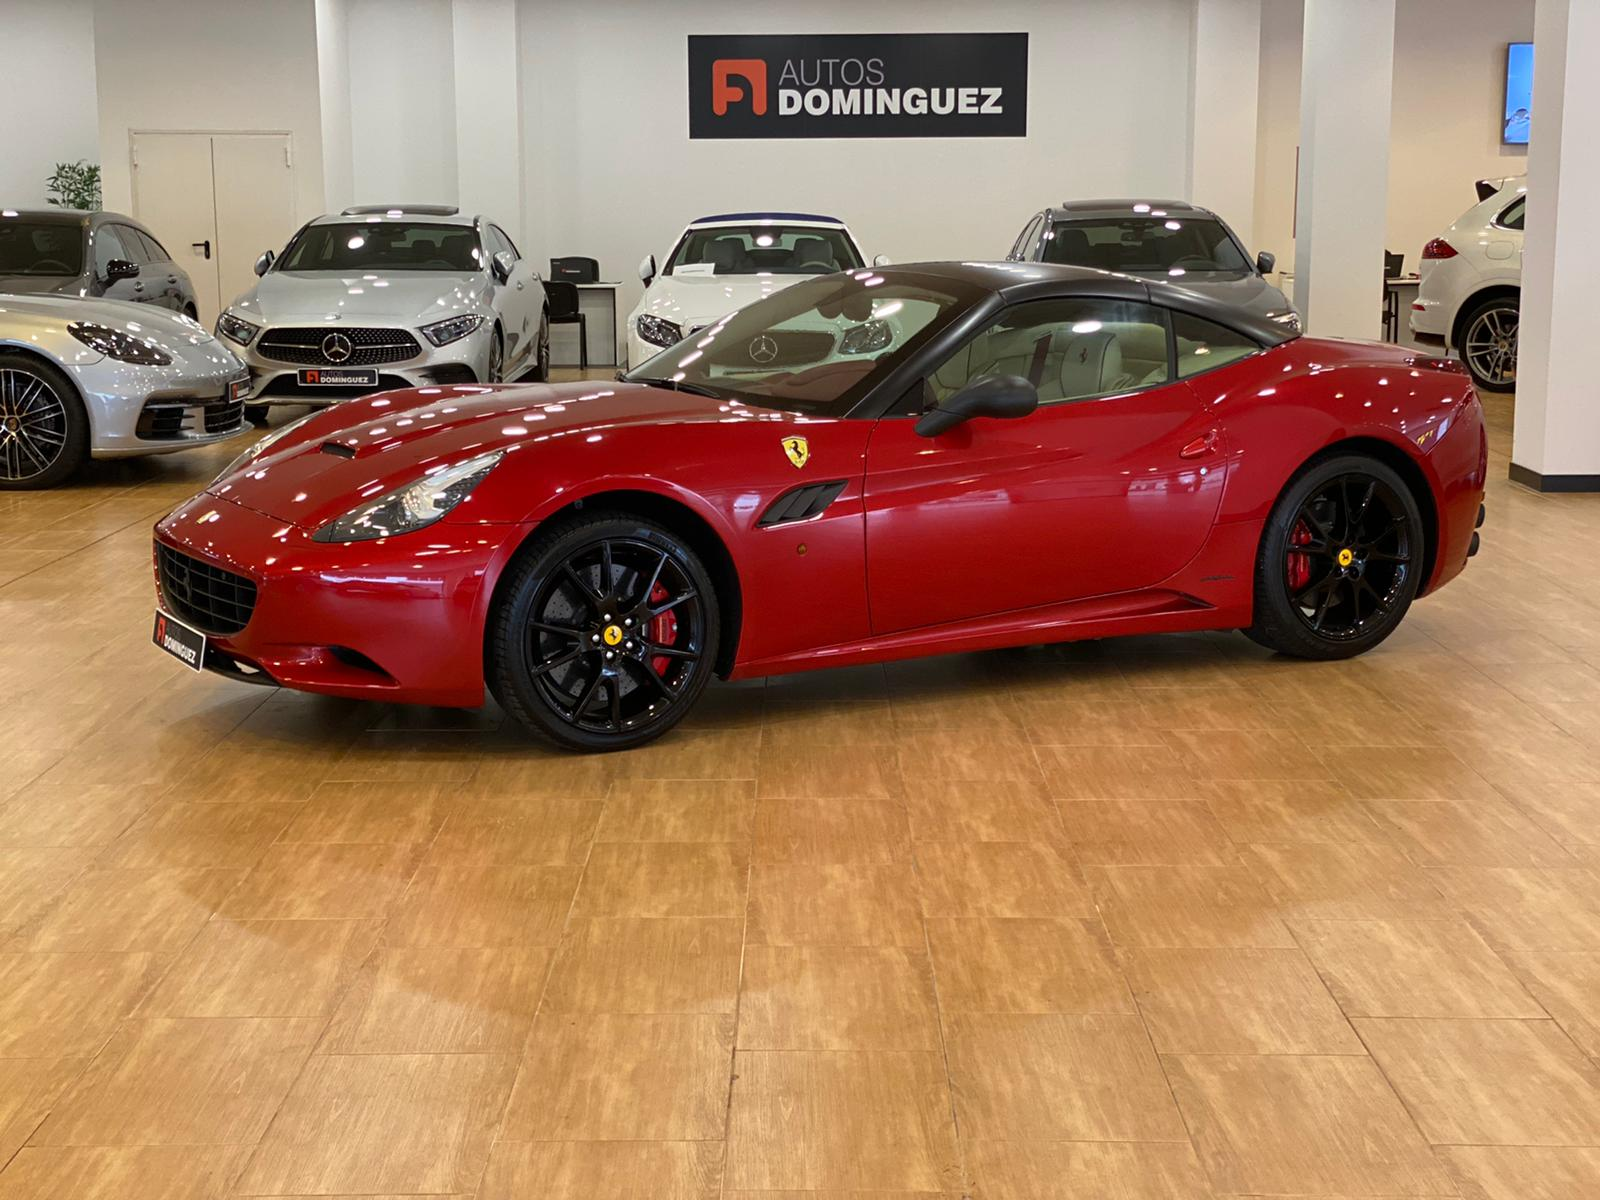 FERRARI CALIFORNIA TAILOR MADE 4 PLAZAS 460 CV 8